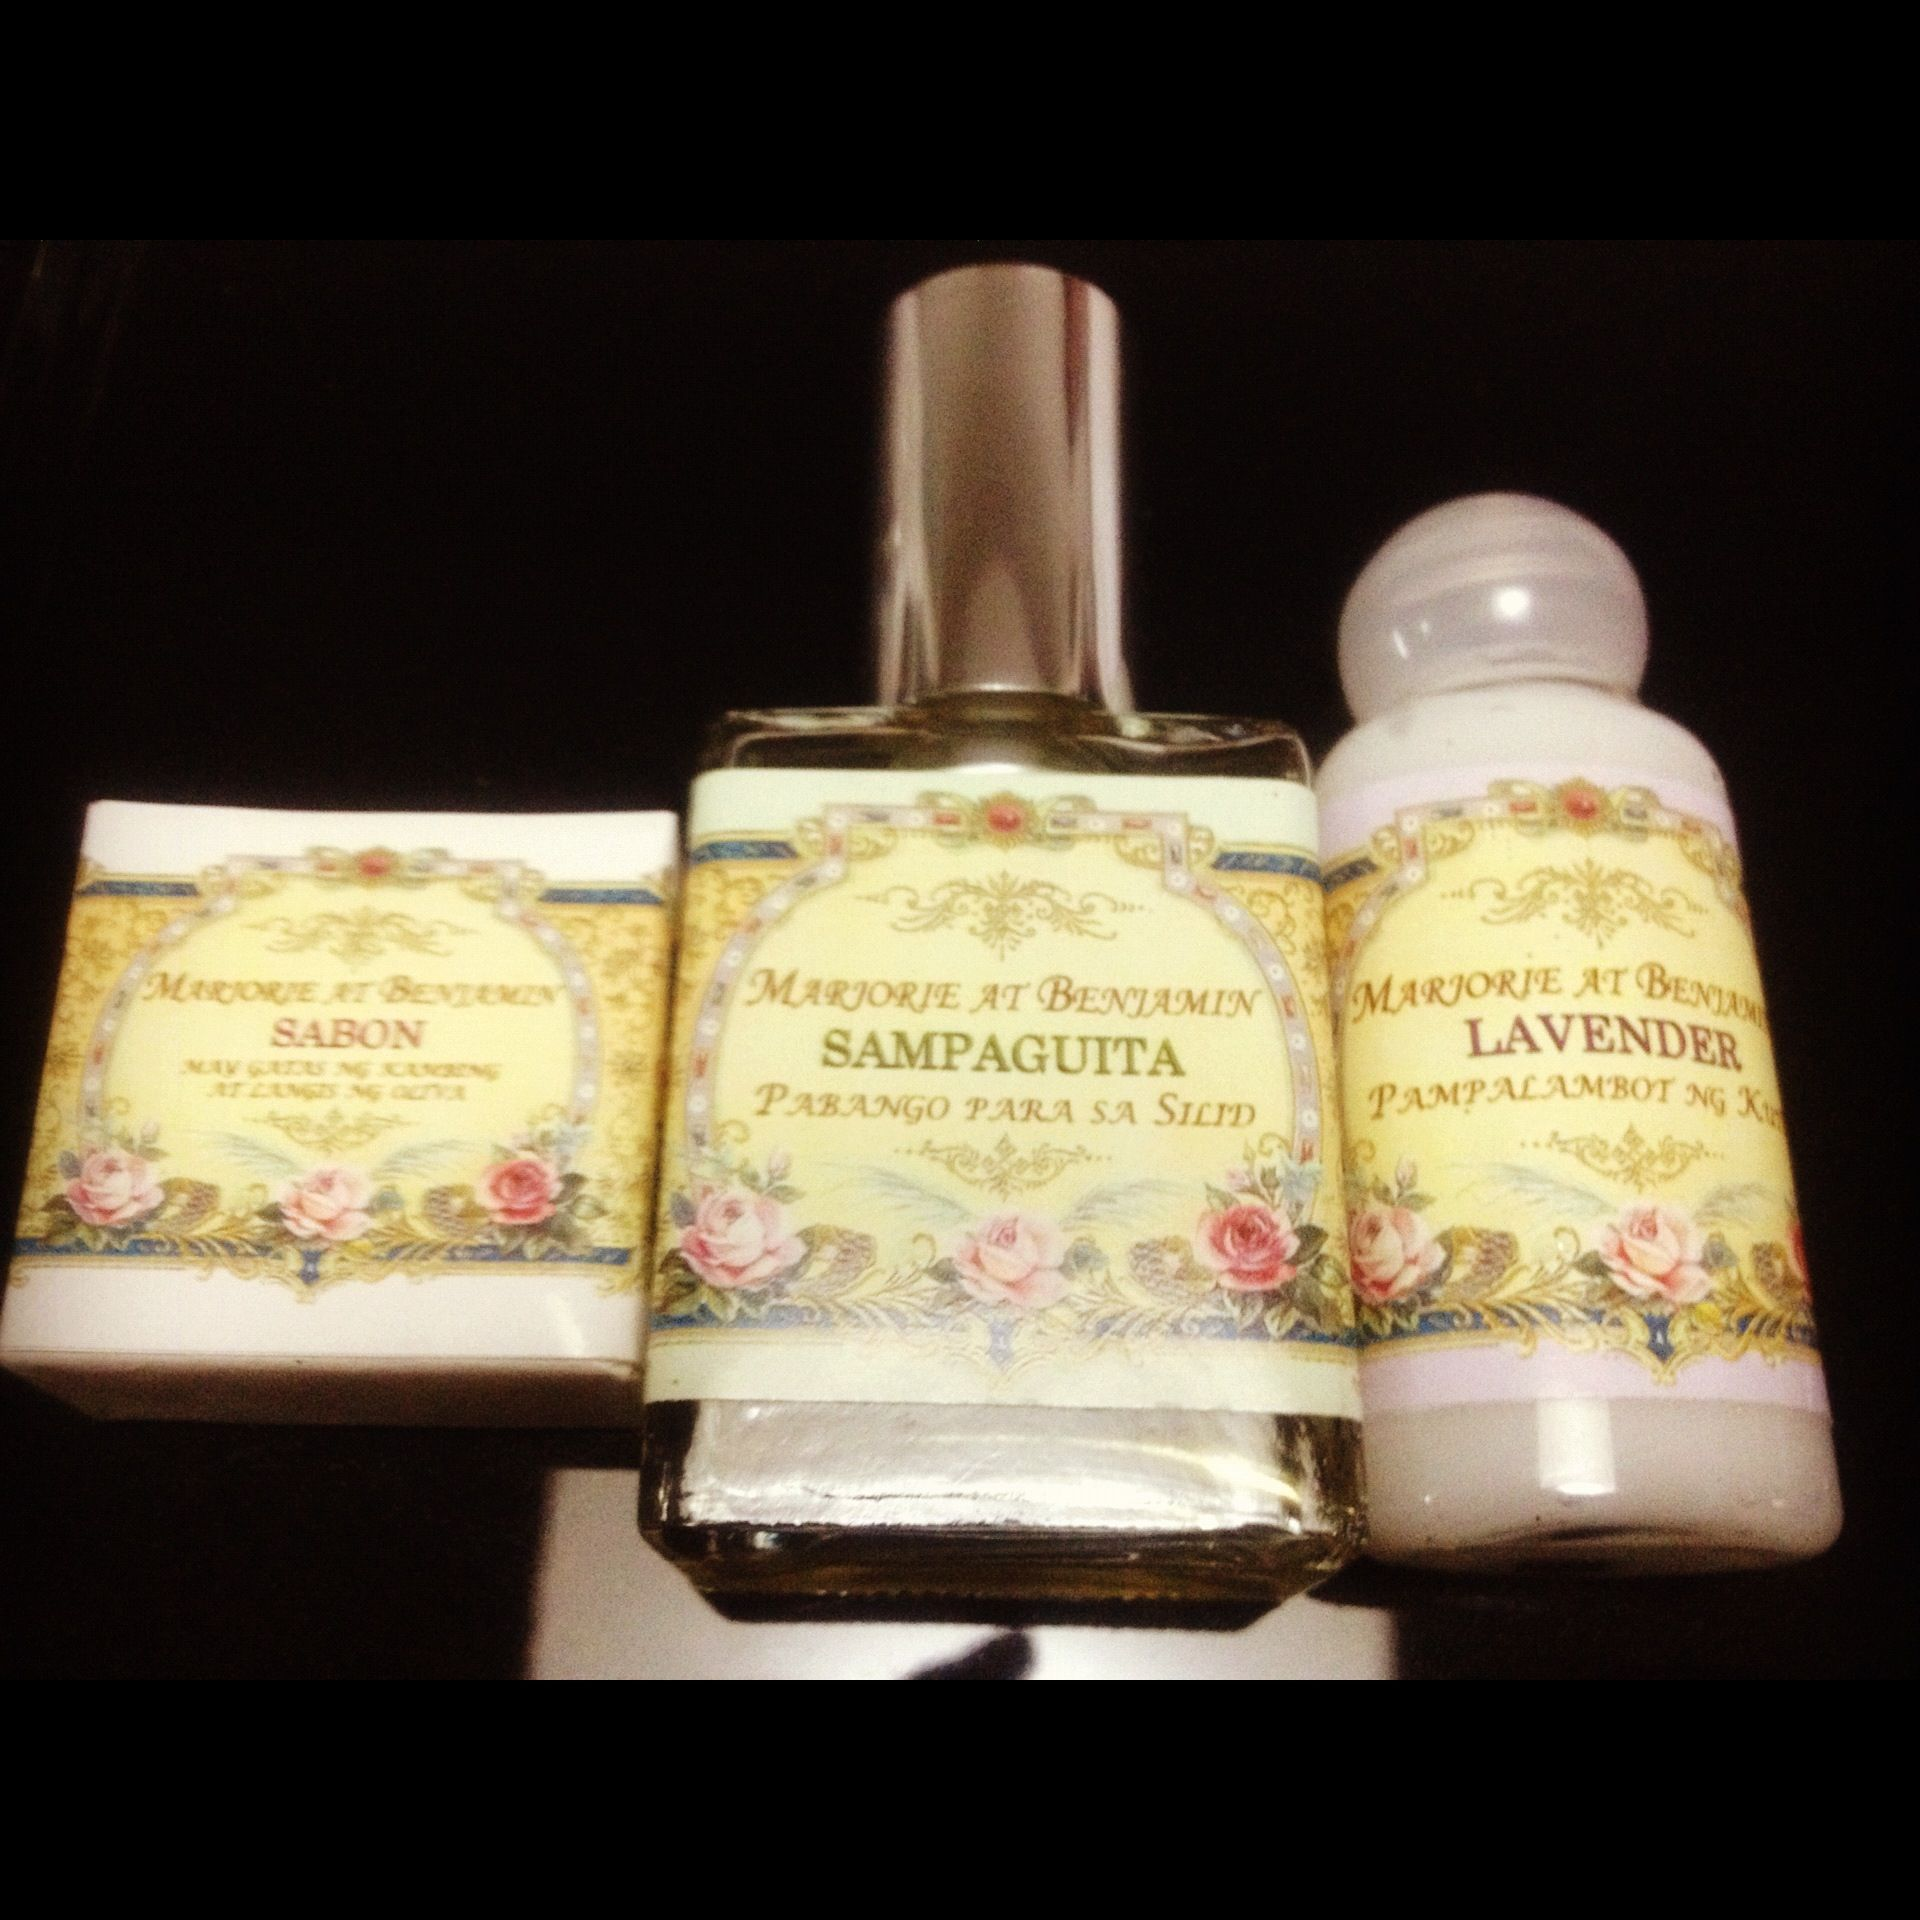 Personalized soap, lotion and room spray formulated by Arch. Lorelei De Viana, one of our principal sponsors, for the whole entourage.   Love the labels BFF/ninang Lorei made!   #jardinsolei.weebly.com